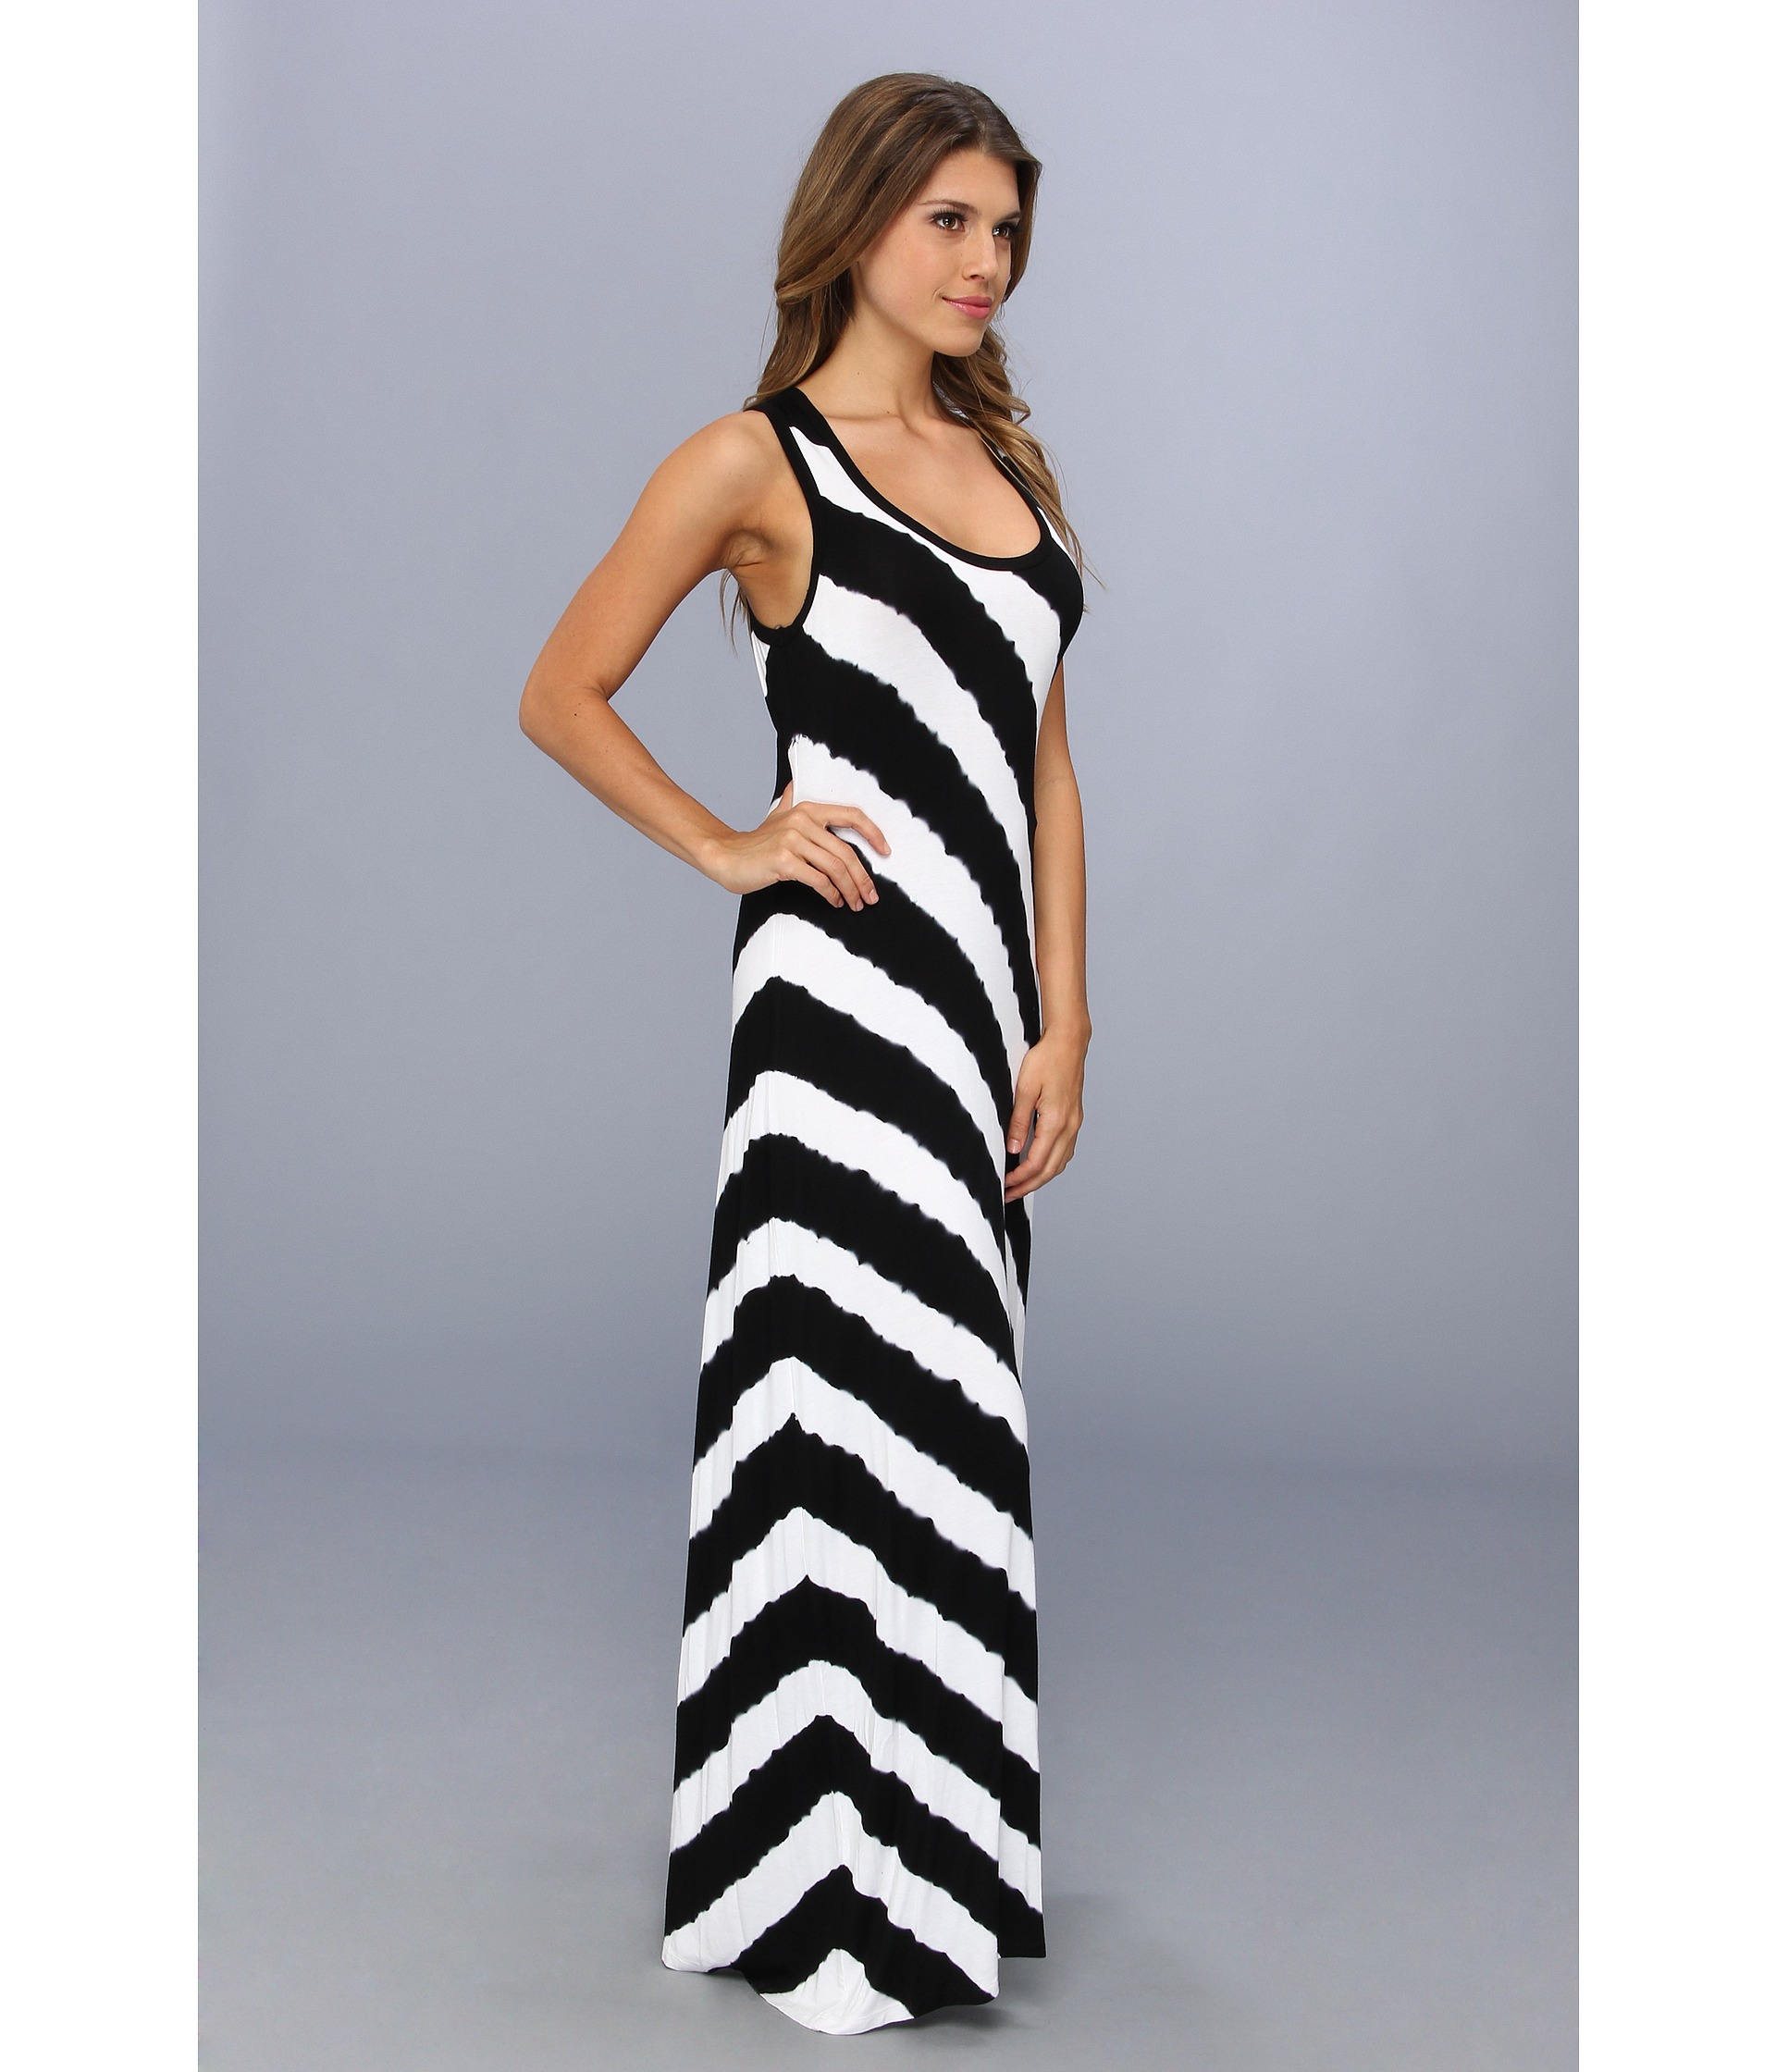 8ec95ad84b6 Calvin Klein Tie Dye Striped Maxi Dress in Black - Lyst